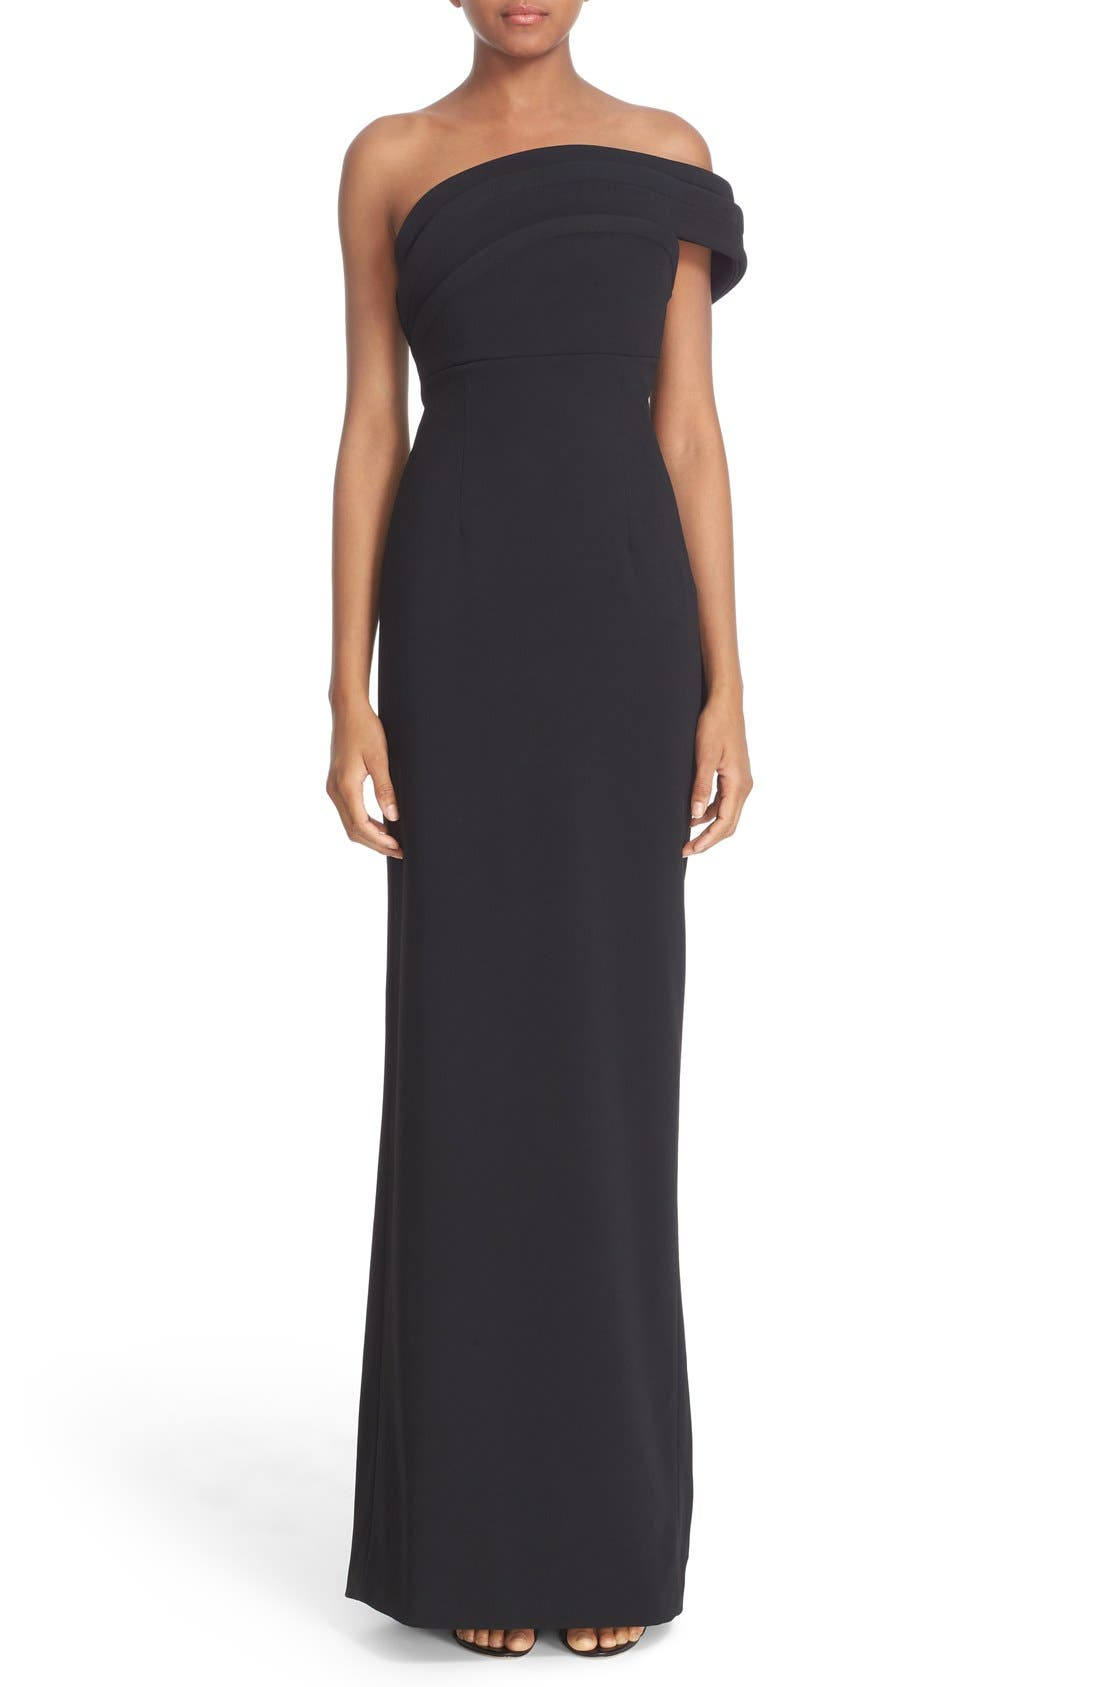 Alternate Image 1 Selected - Brandon Maxwell 'Cady' Off the Shoulder Column Gown